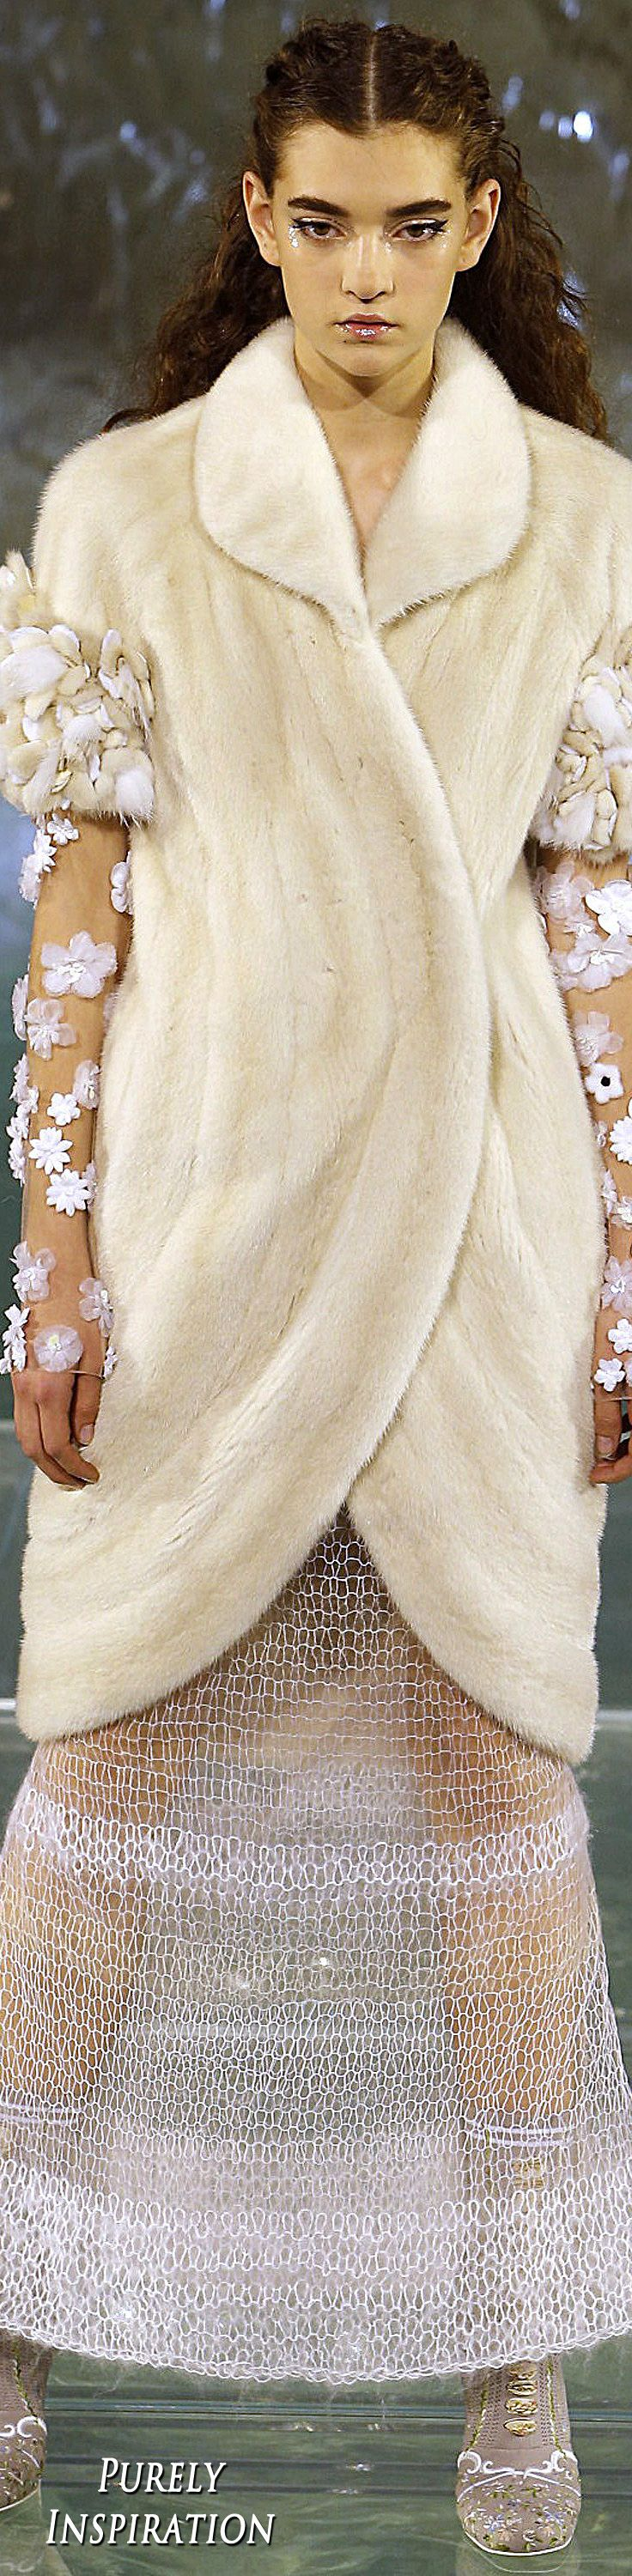 Fendi Fall 2016 Haute Couture | Purely Inspiration